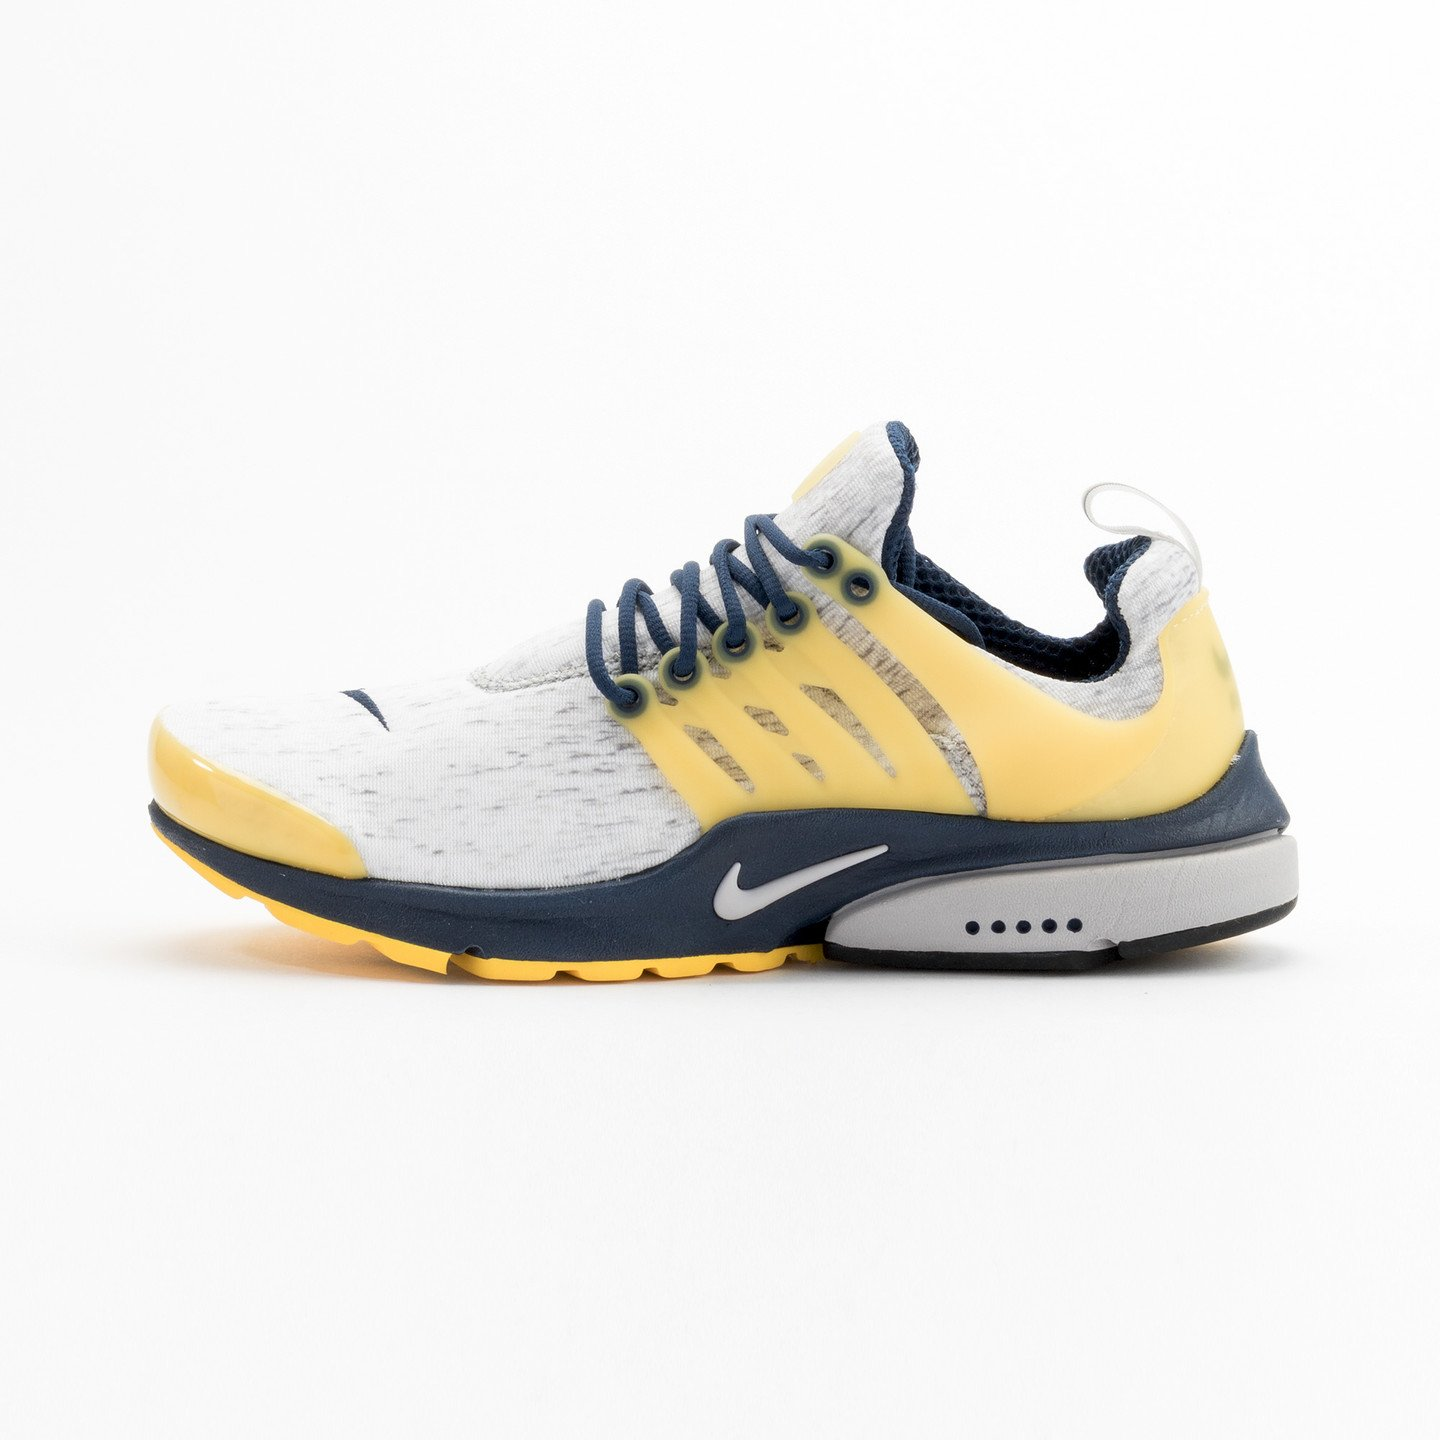 Nike Air Presto 'Shady Milkman' Zen Grey / Midnight Navy 305919-041-3XS